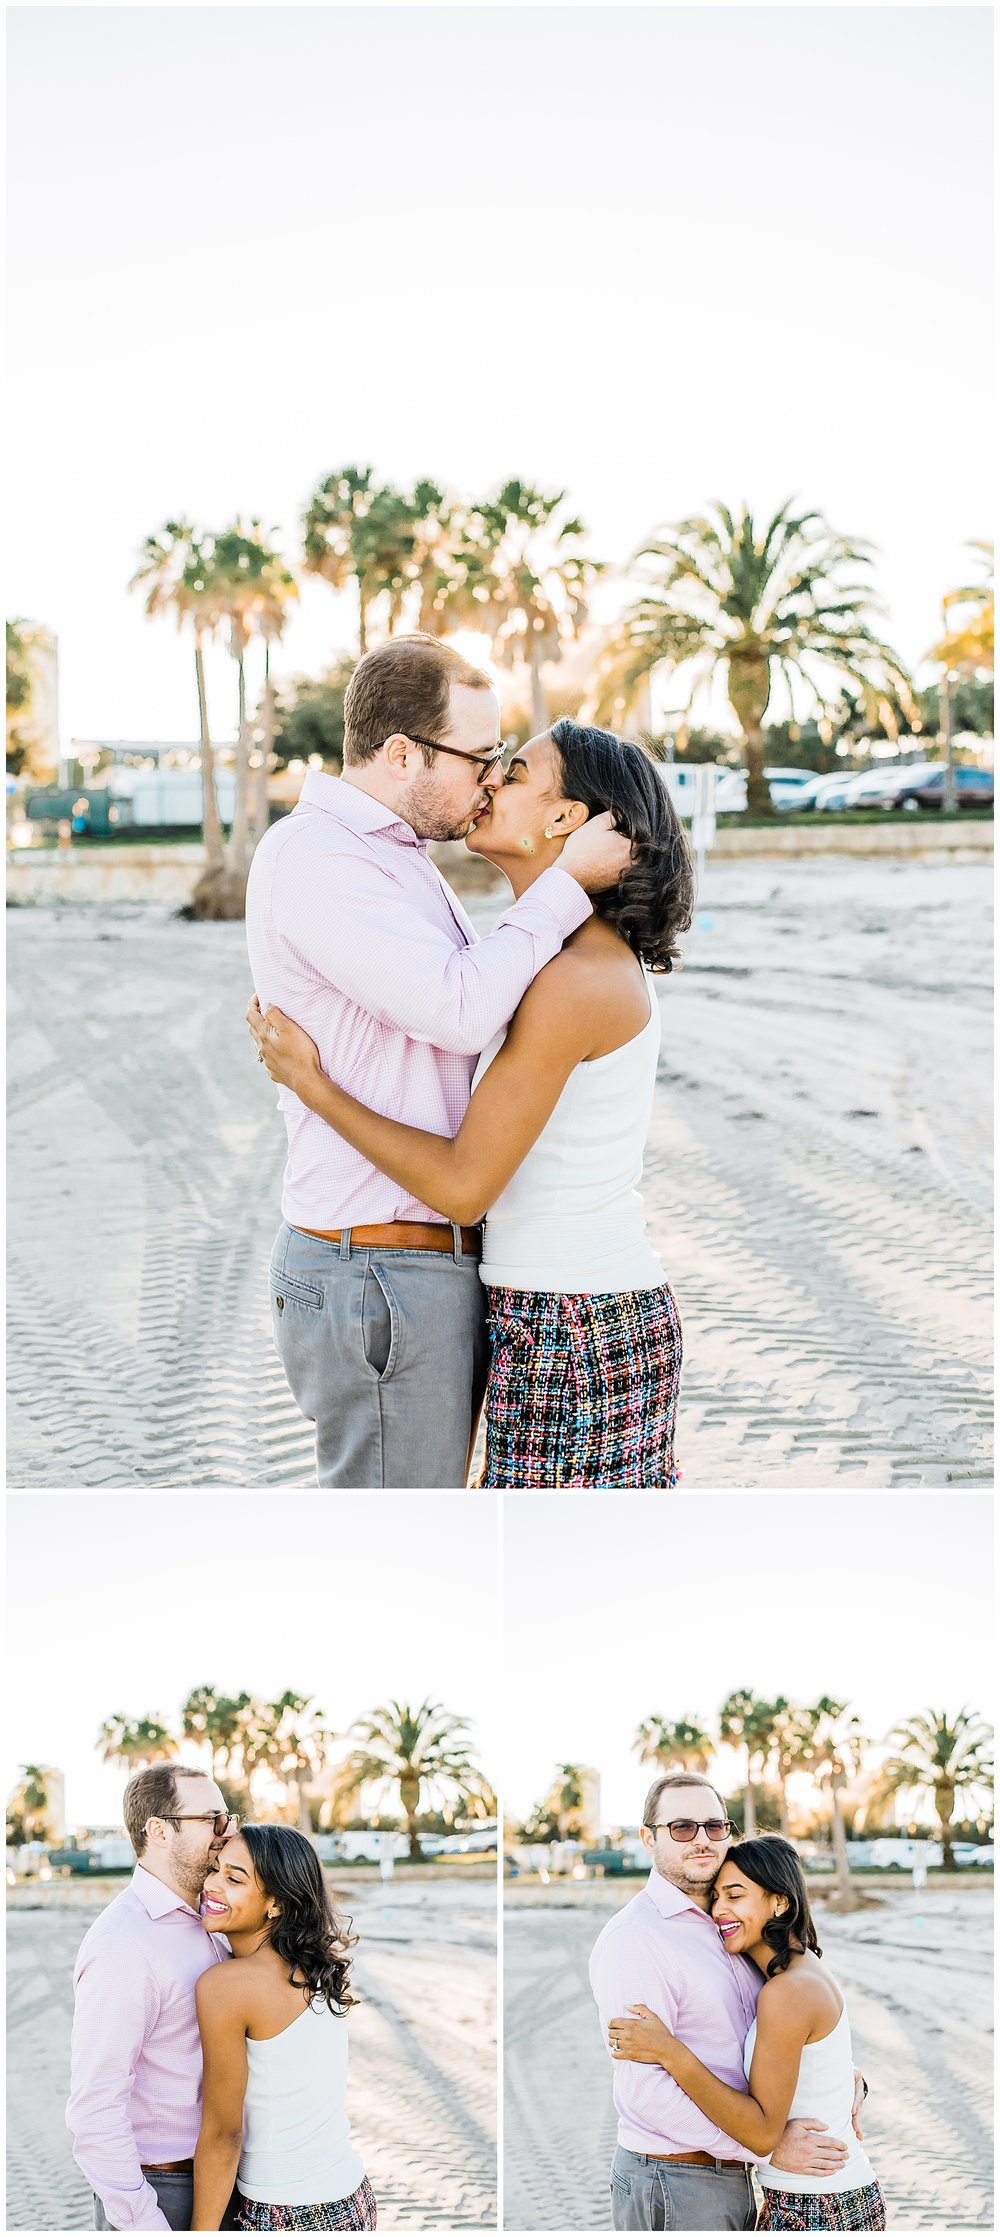 jessicafredericks_st petersburg_florida_downtown_engagement_palm trees_sunset_brewery_0024.jpg